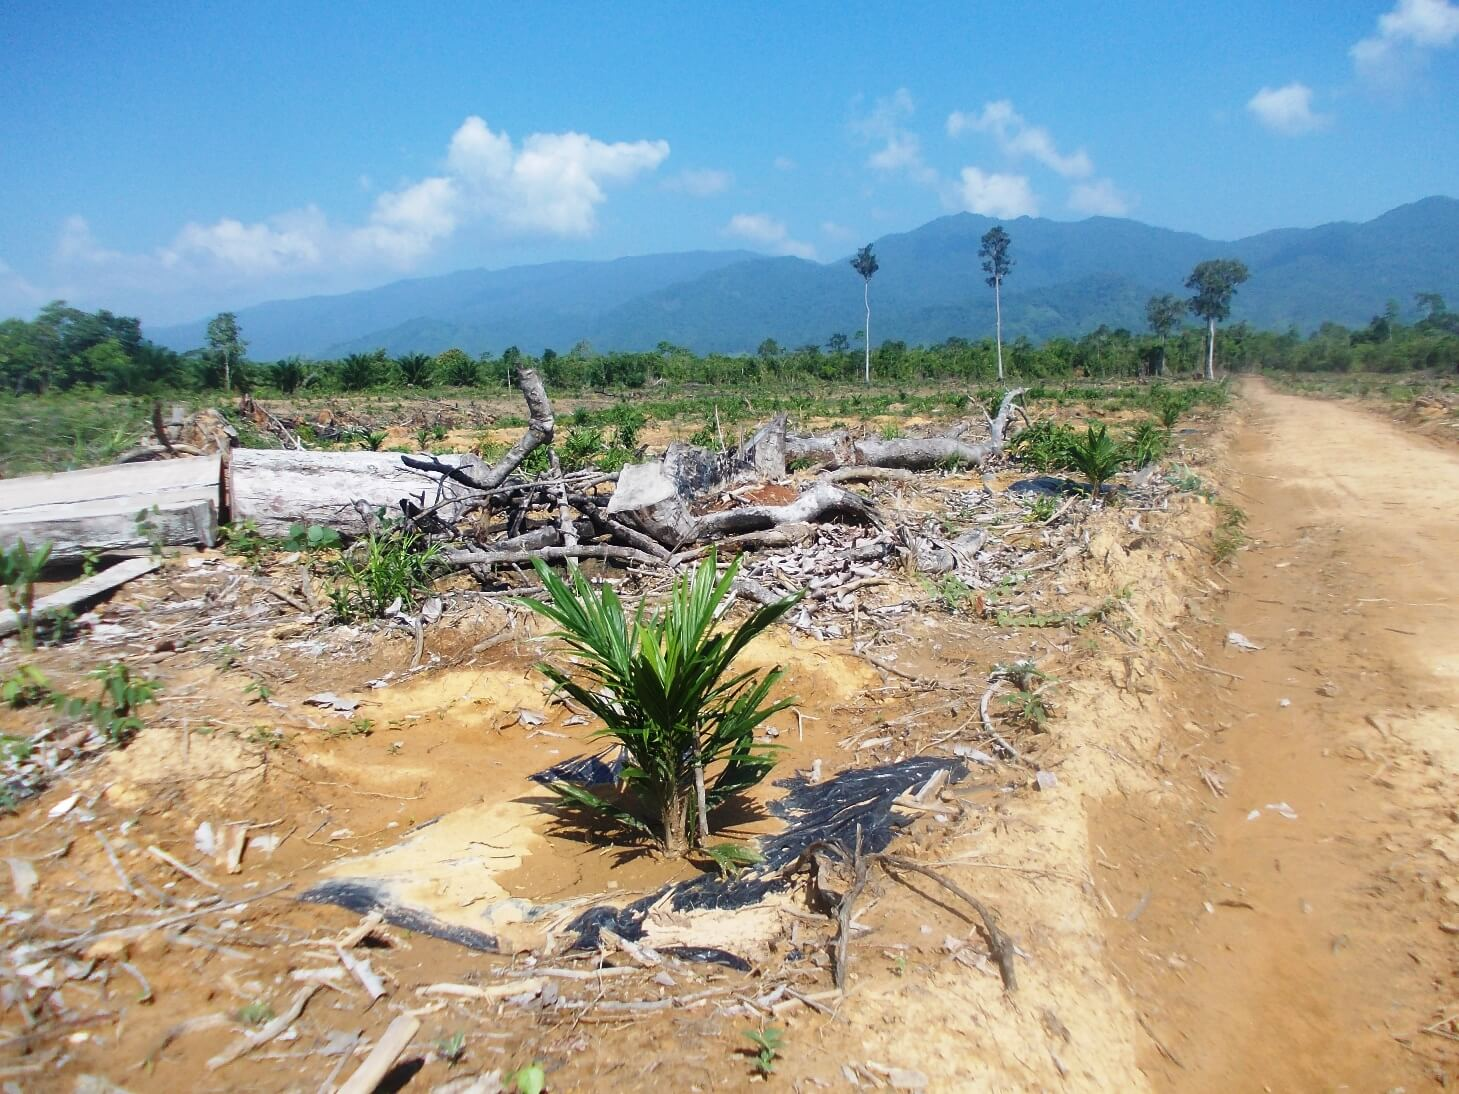 Massive forest clearing for oil palm plantations in Sandoval, Municipality of Bataraza